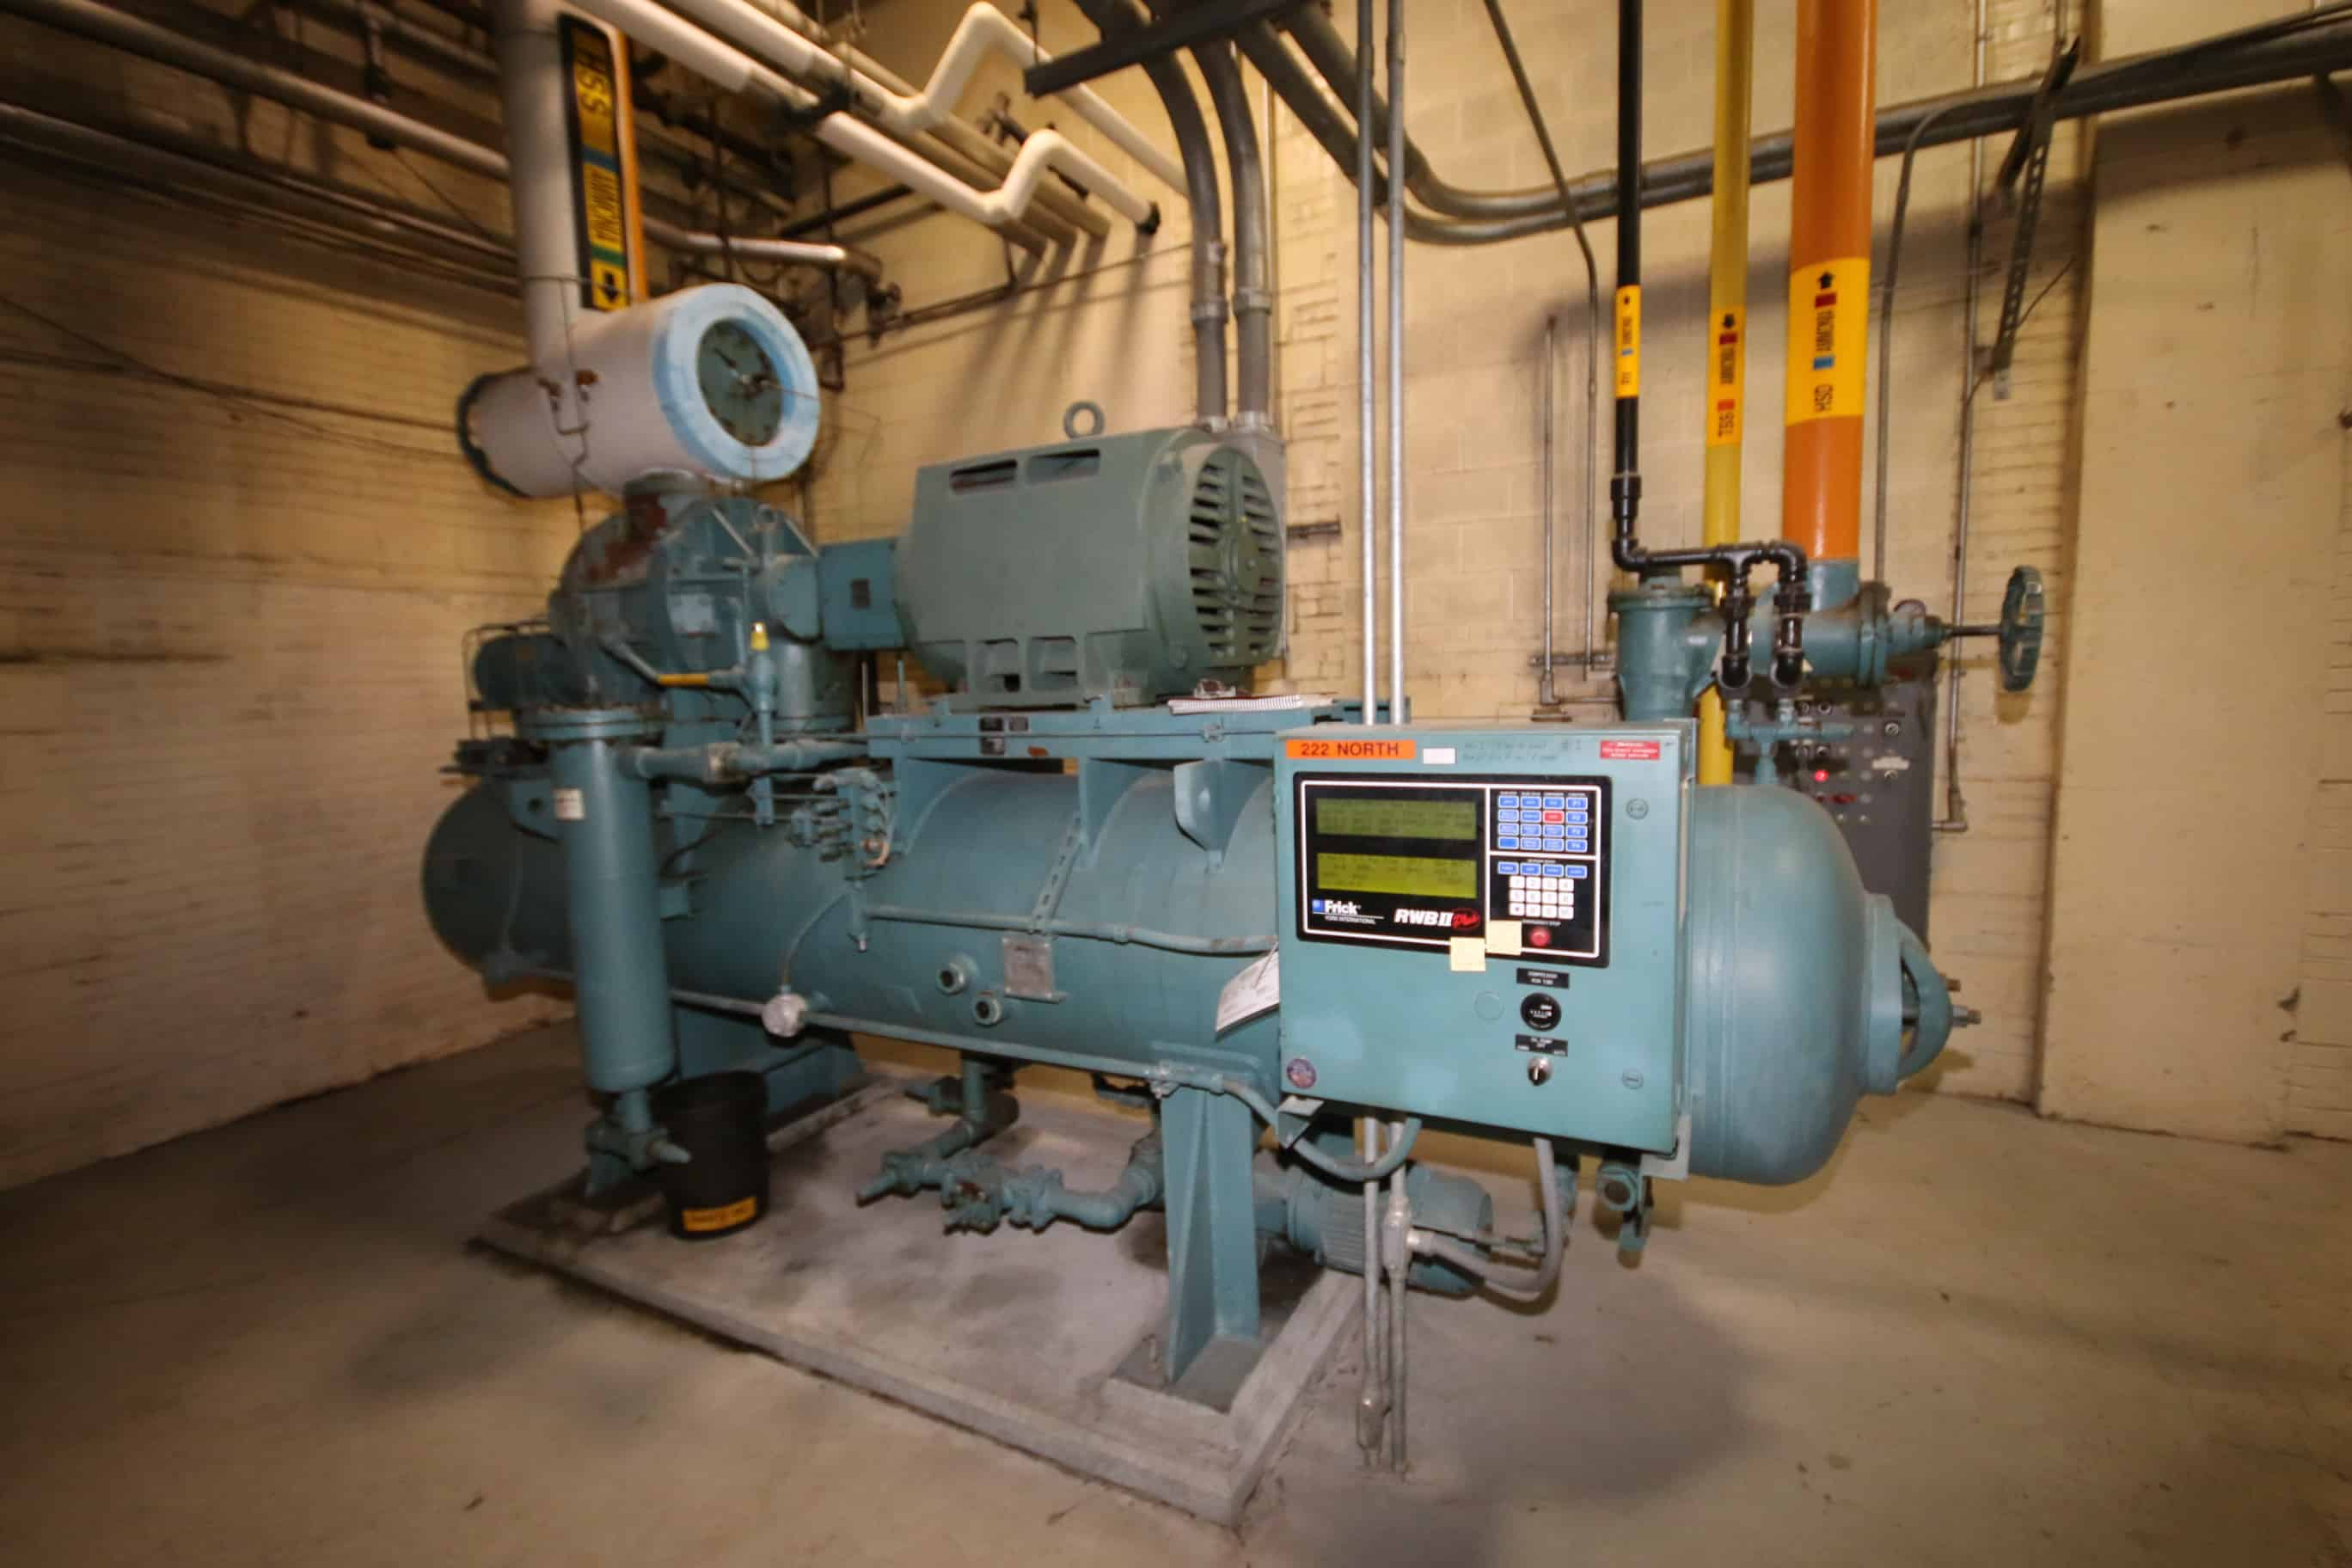 Frick 500 hp Screw Ammonia Compressor, Frame Model RWBII222H, SN S06000FMCTHAA0, Screw Model/SN TDSH233L1954F, with 3570 RPM Motor, RWBII Plus Touch Screen Controls & Ram Starter, 460V 3 Phase, (Unit 222 North)